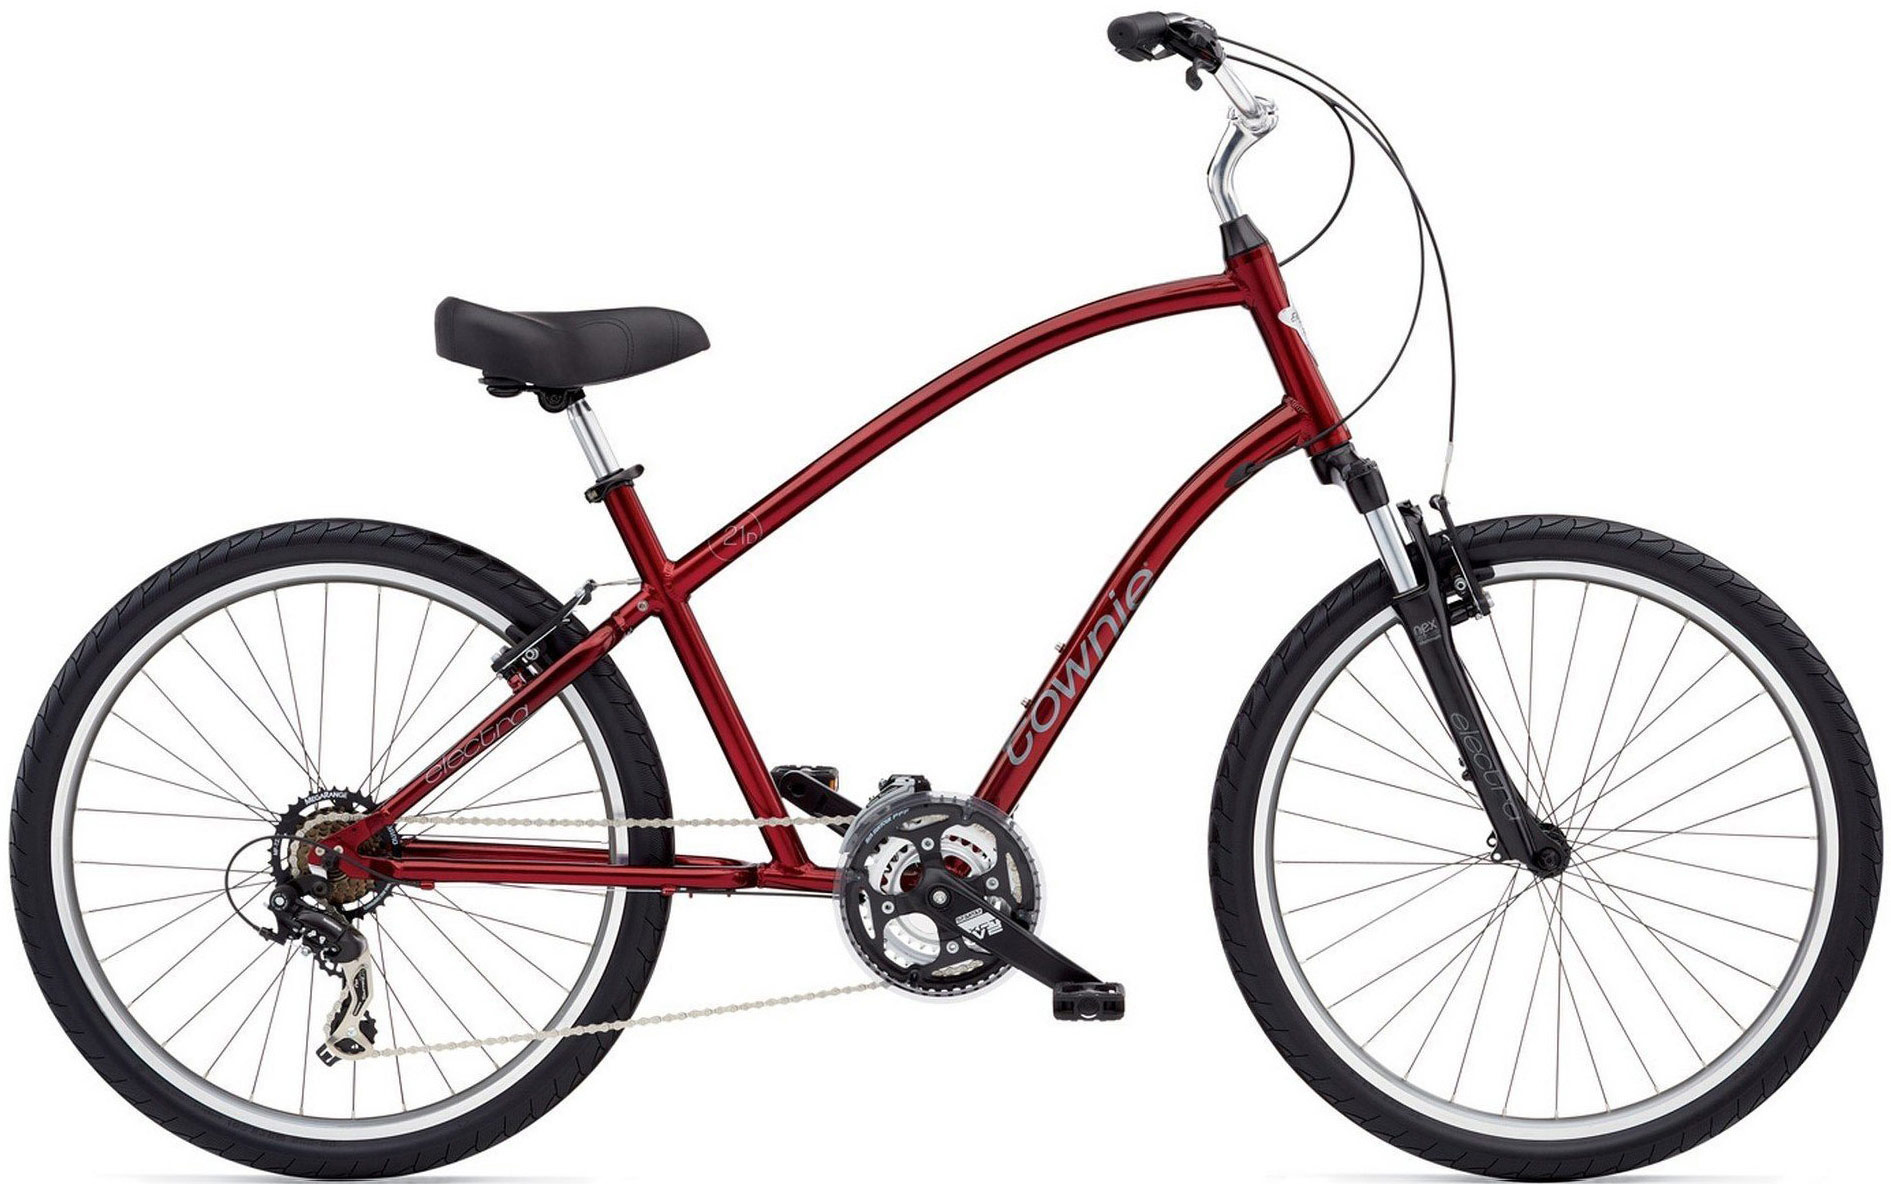 Electra Townie 21D in Crimson Mettalic